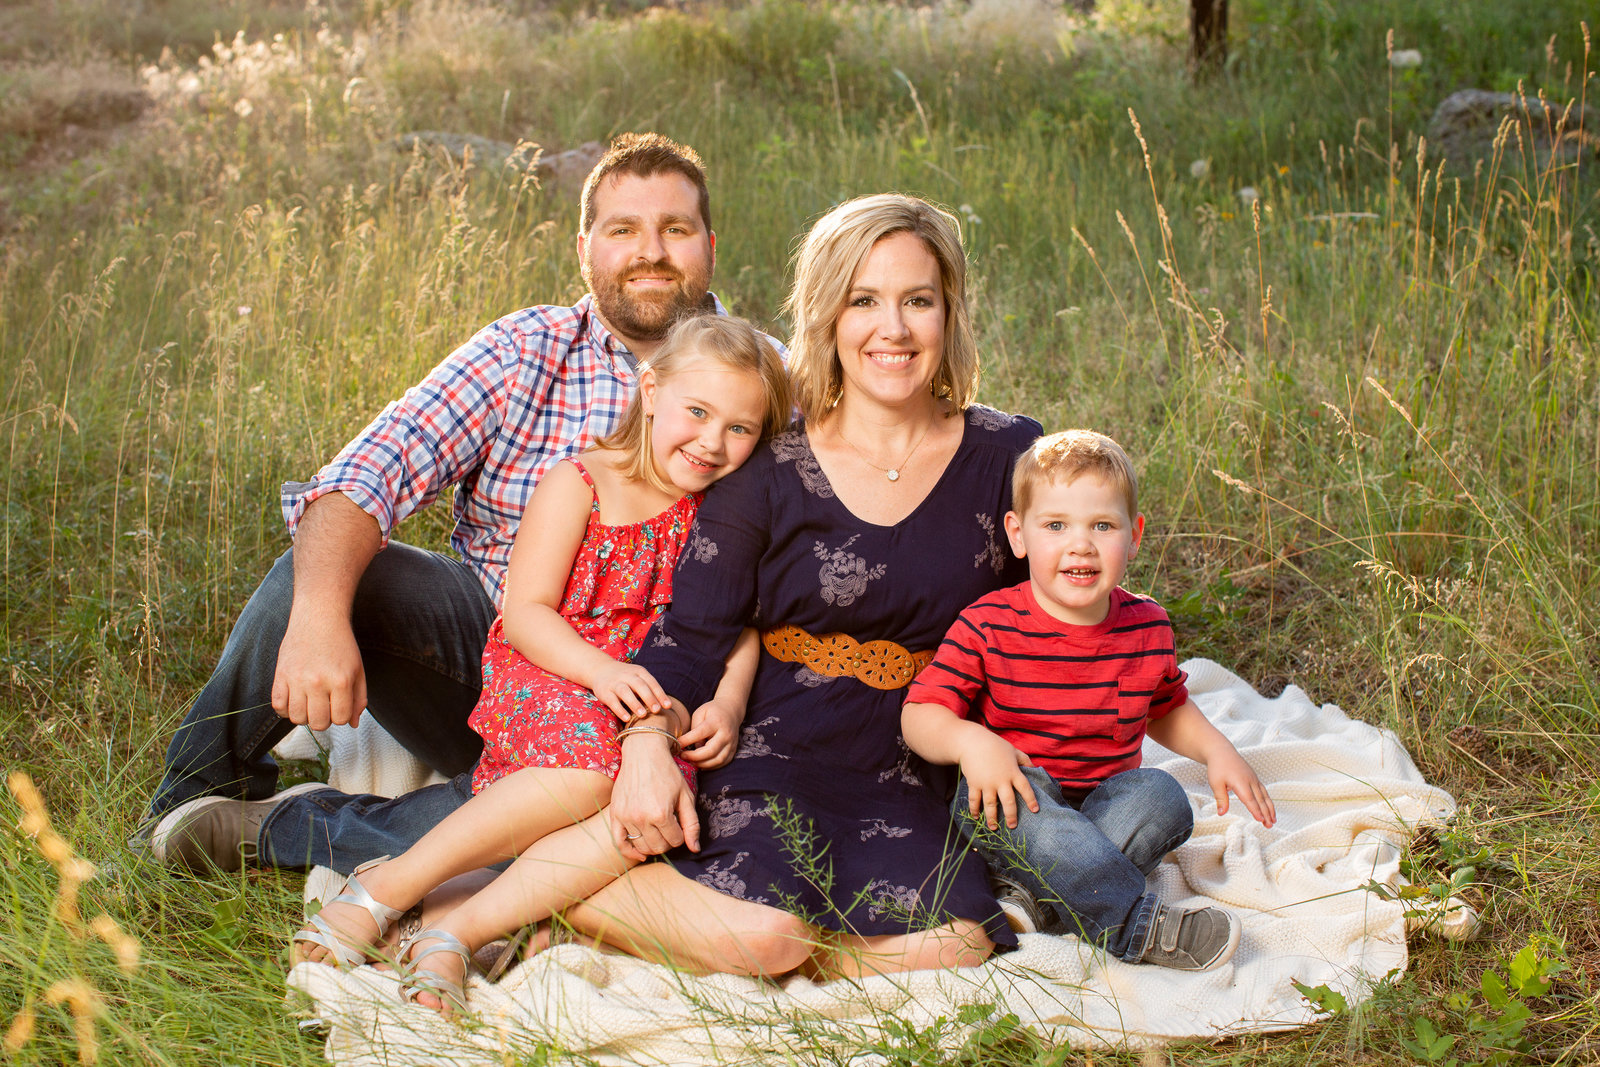 Boulder_Family_Portraits_Colorado-11